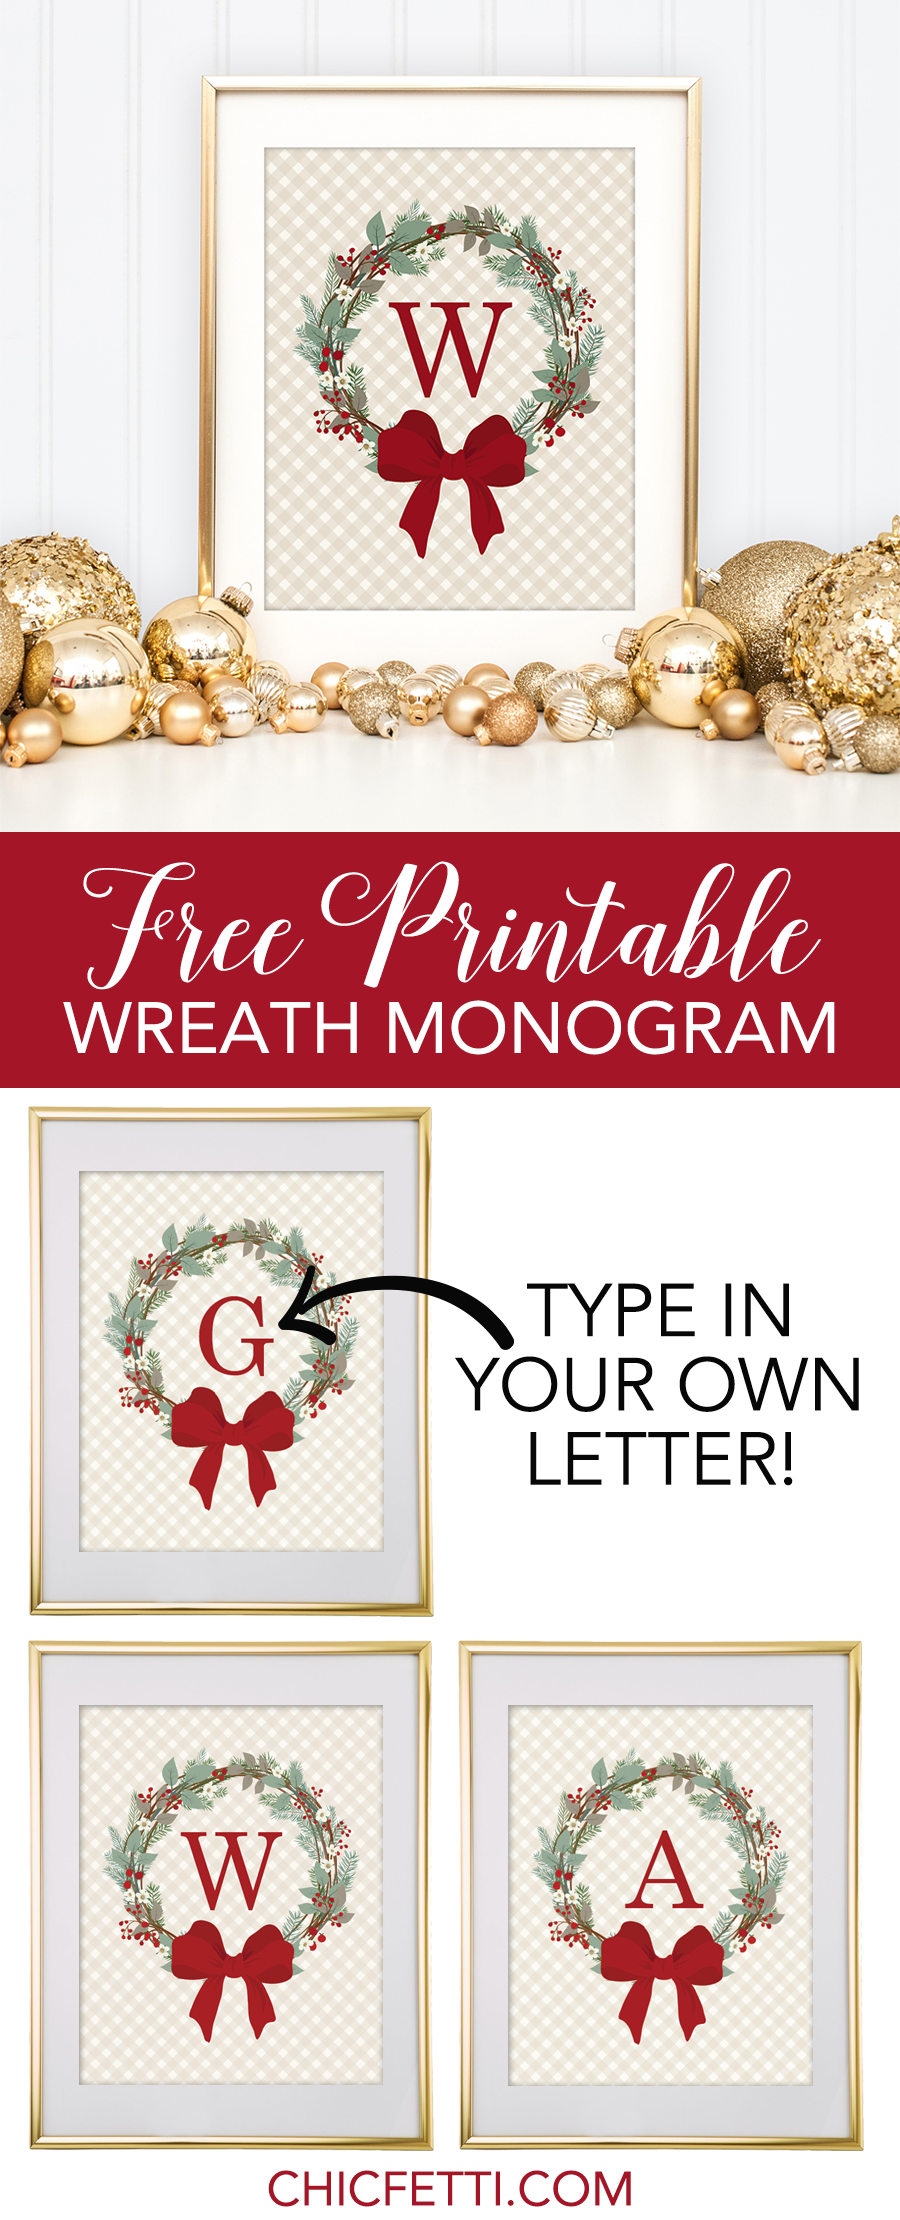 Christmas wreath free monogram maker chicfetti blog free free printable christmas wreath monogram from chicfetti make your own monogram kristyandbryce Images